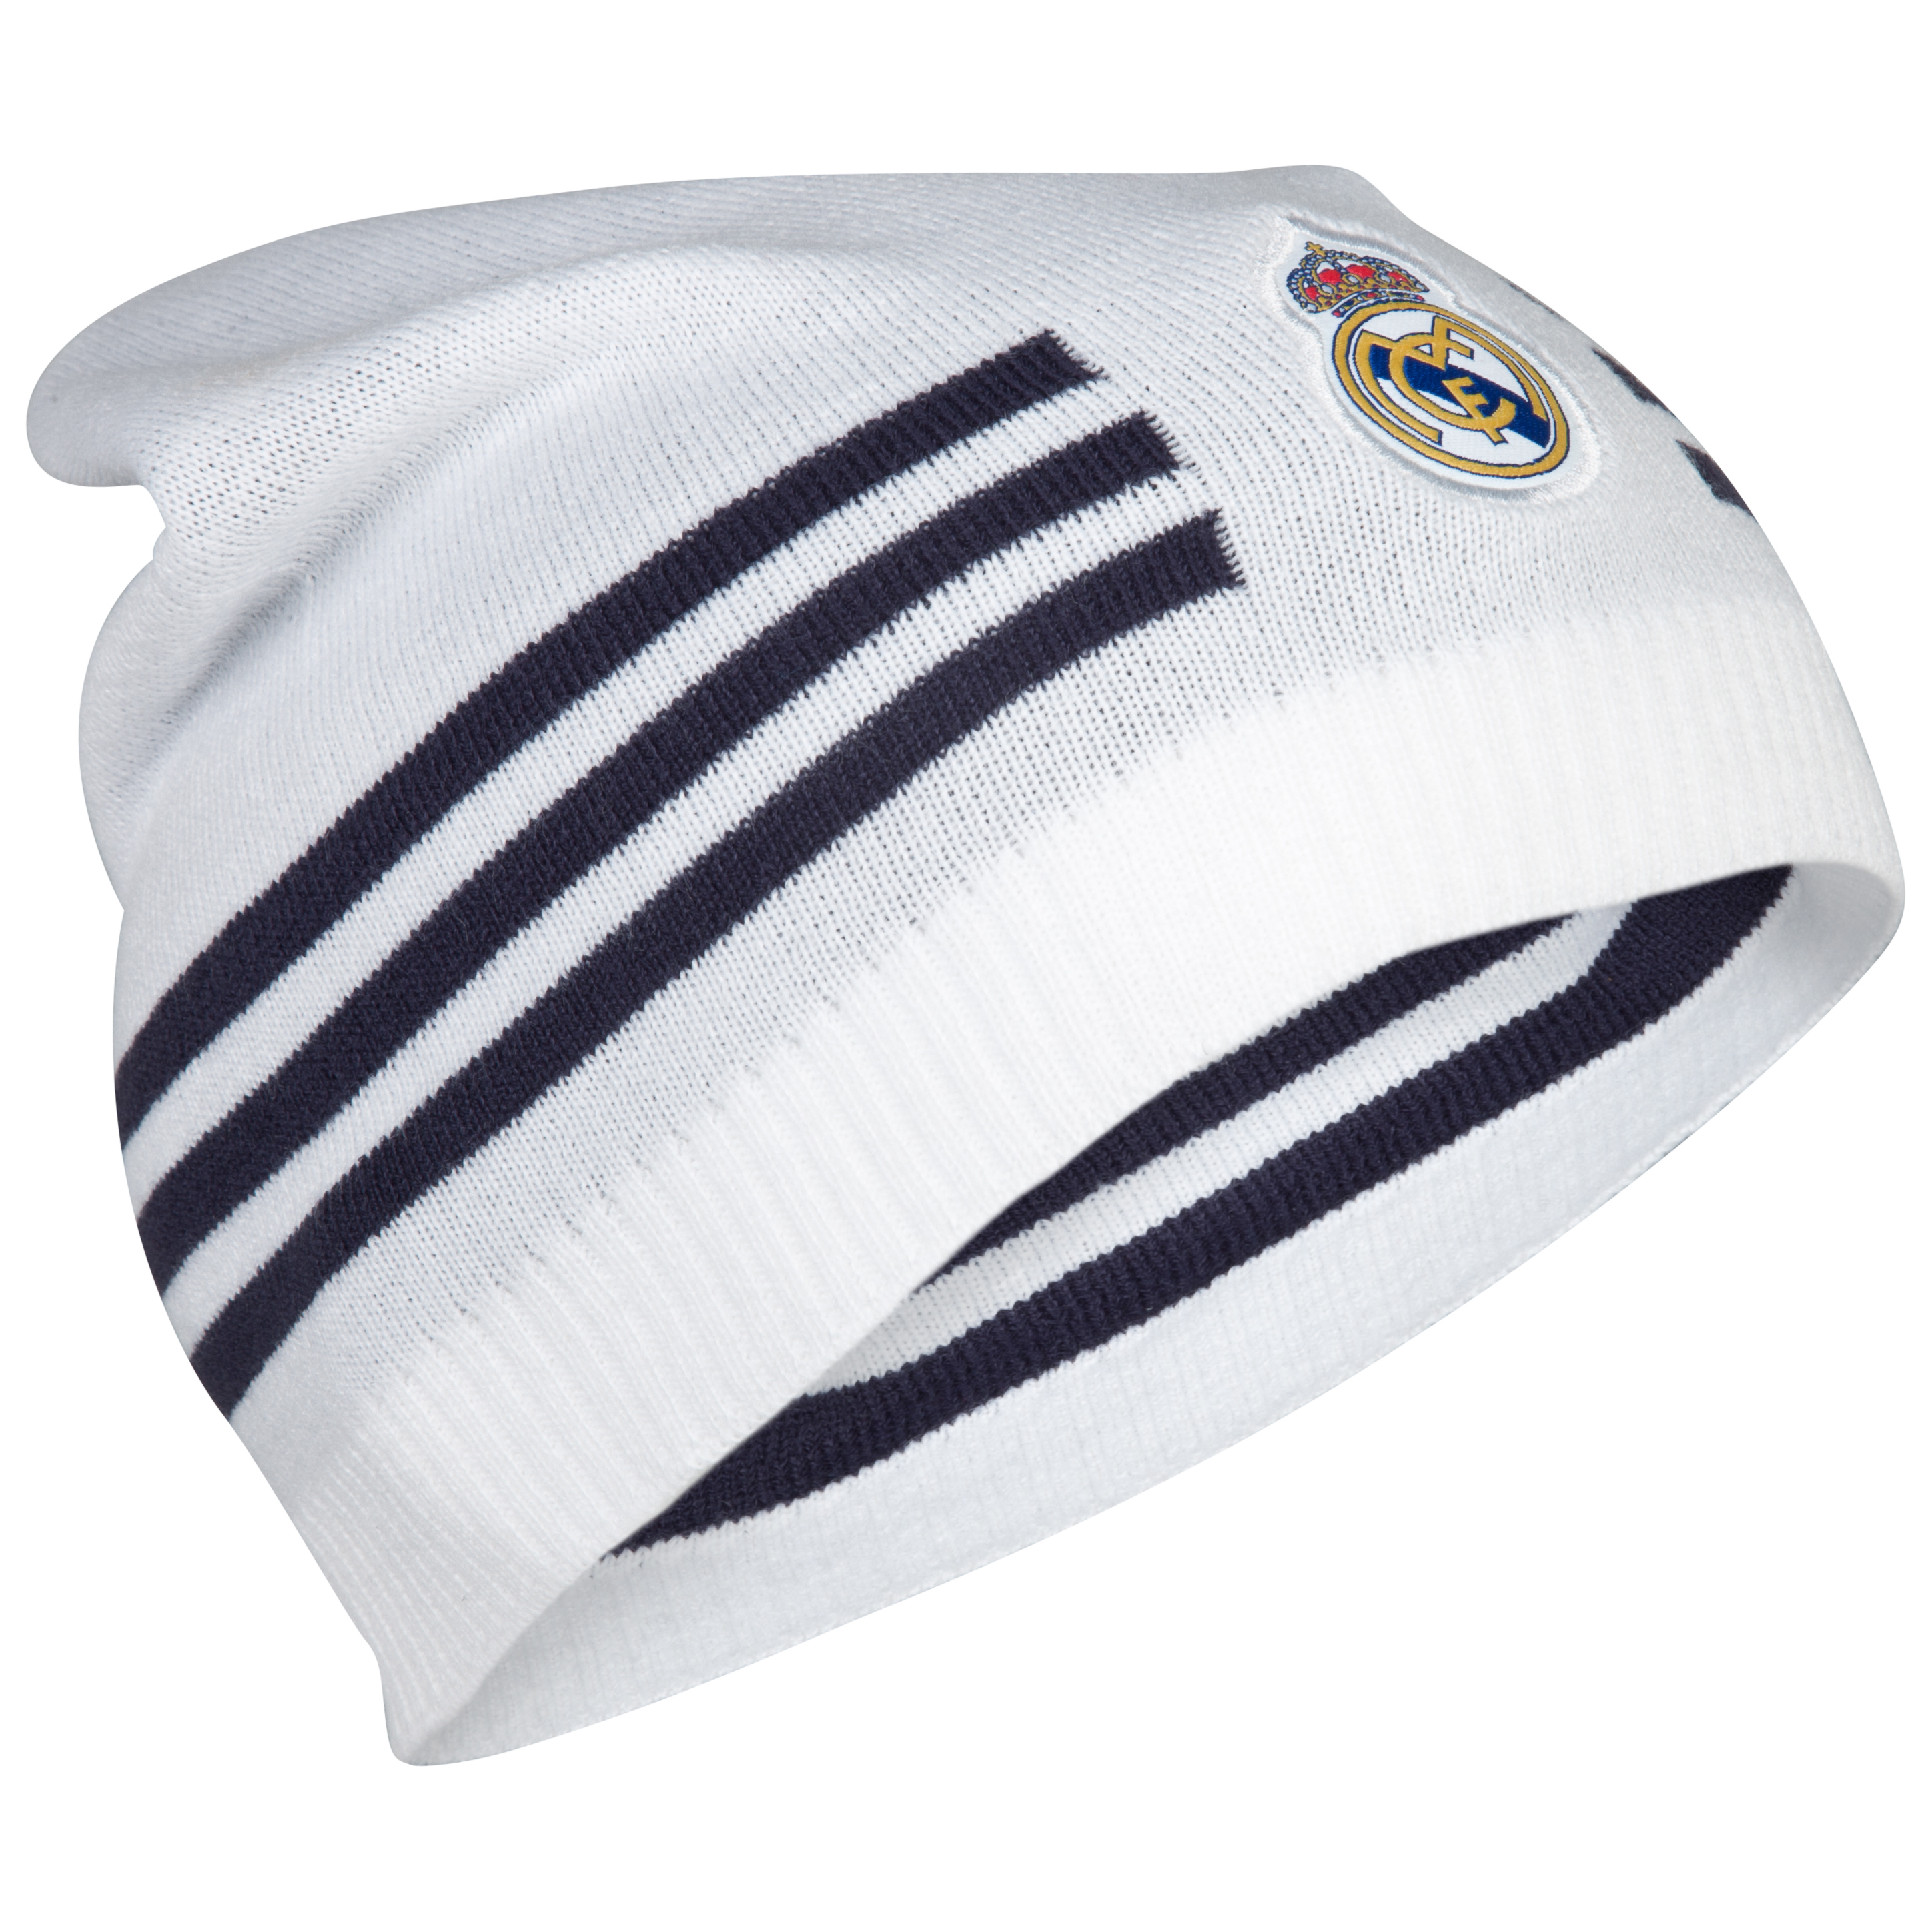 Real Madrid Beanie - White/Noble Ink